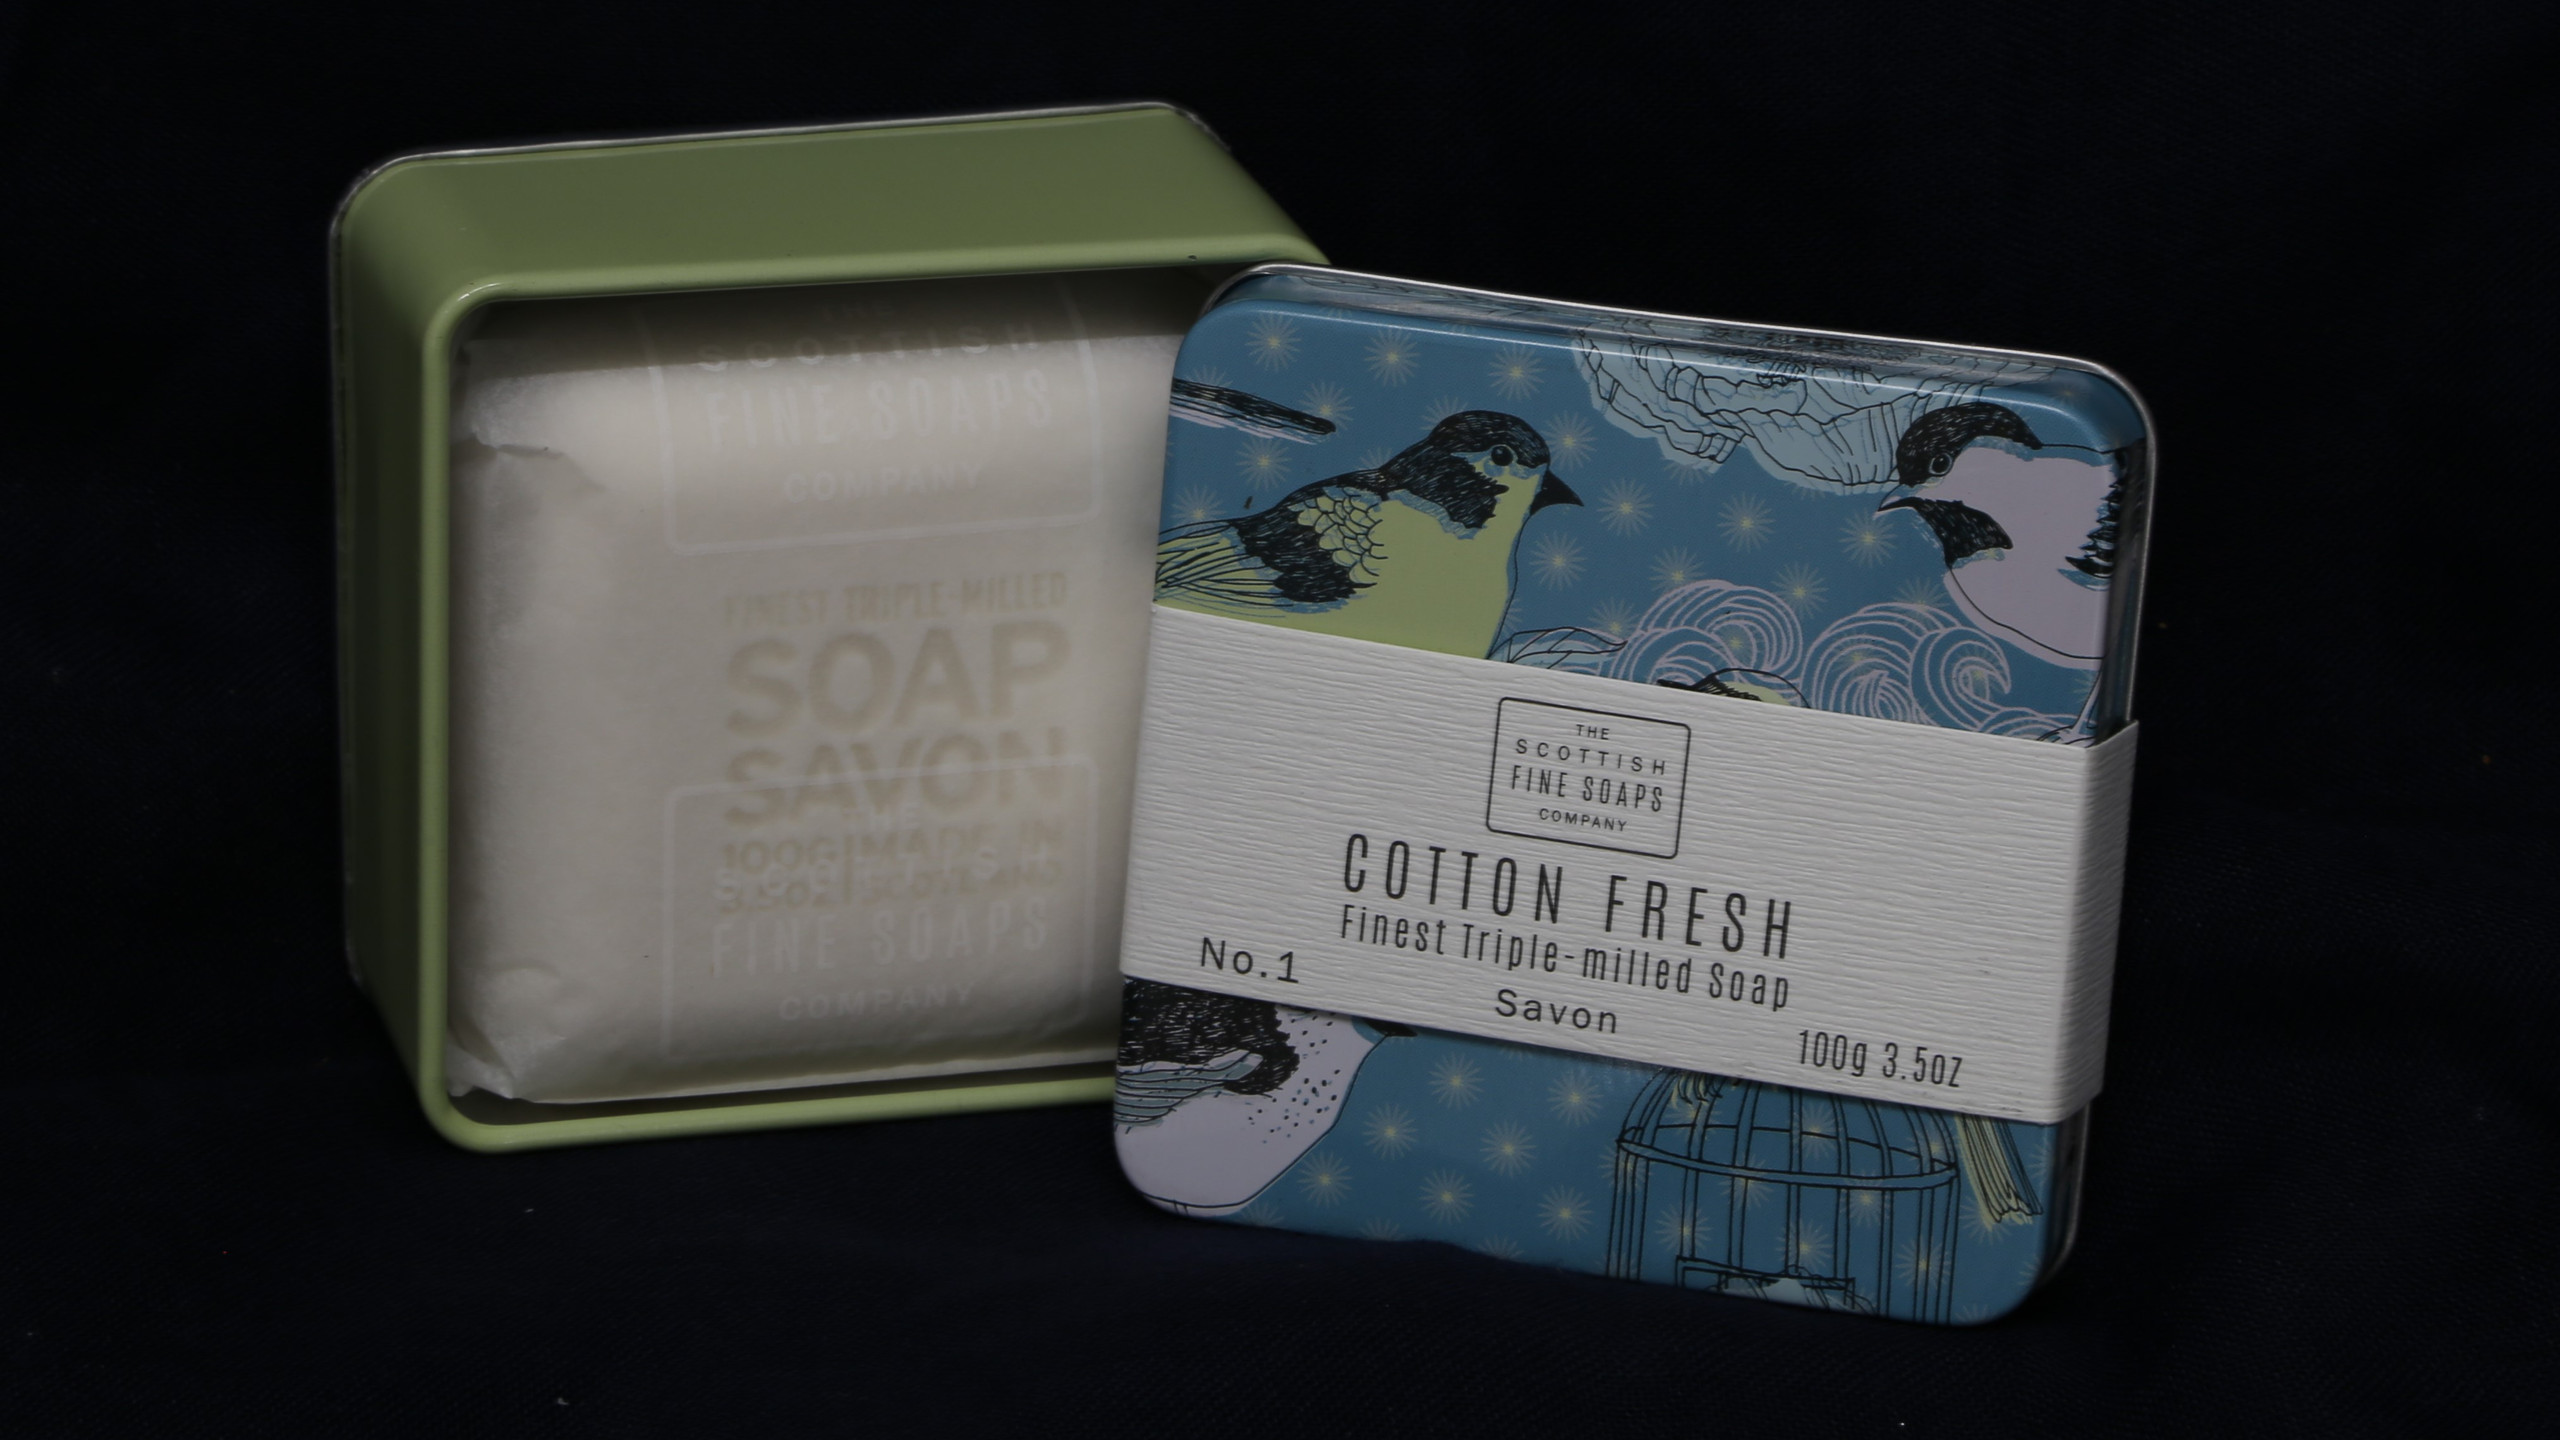 Luxury soap - Cotton Fresh